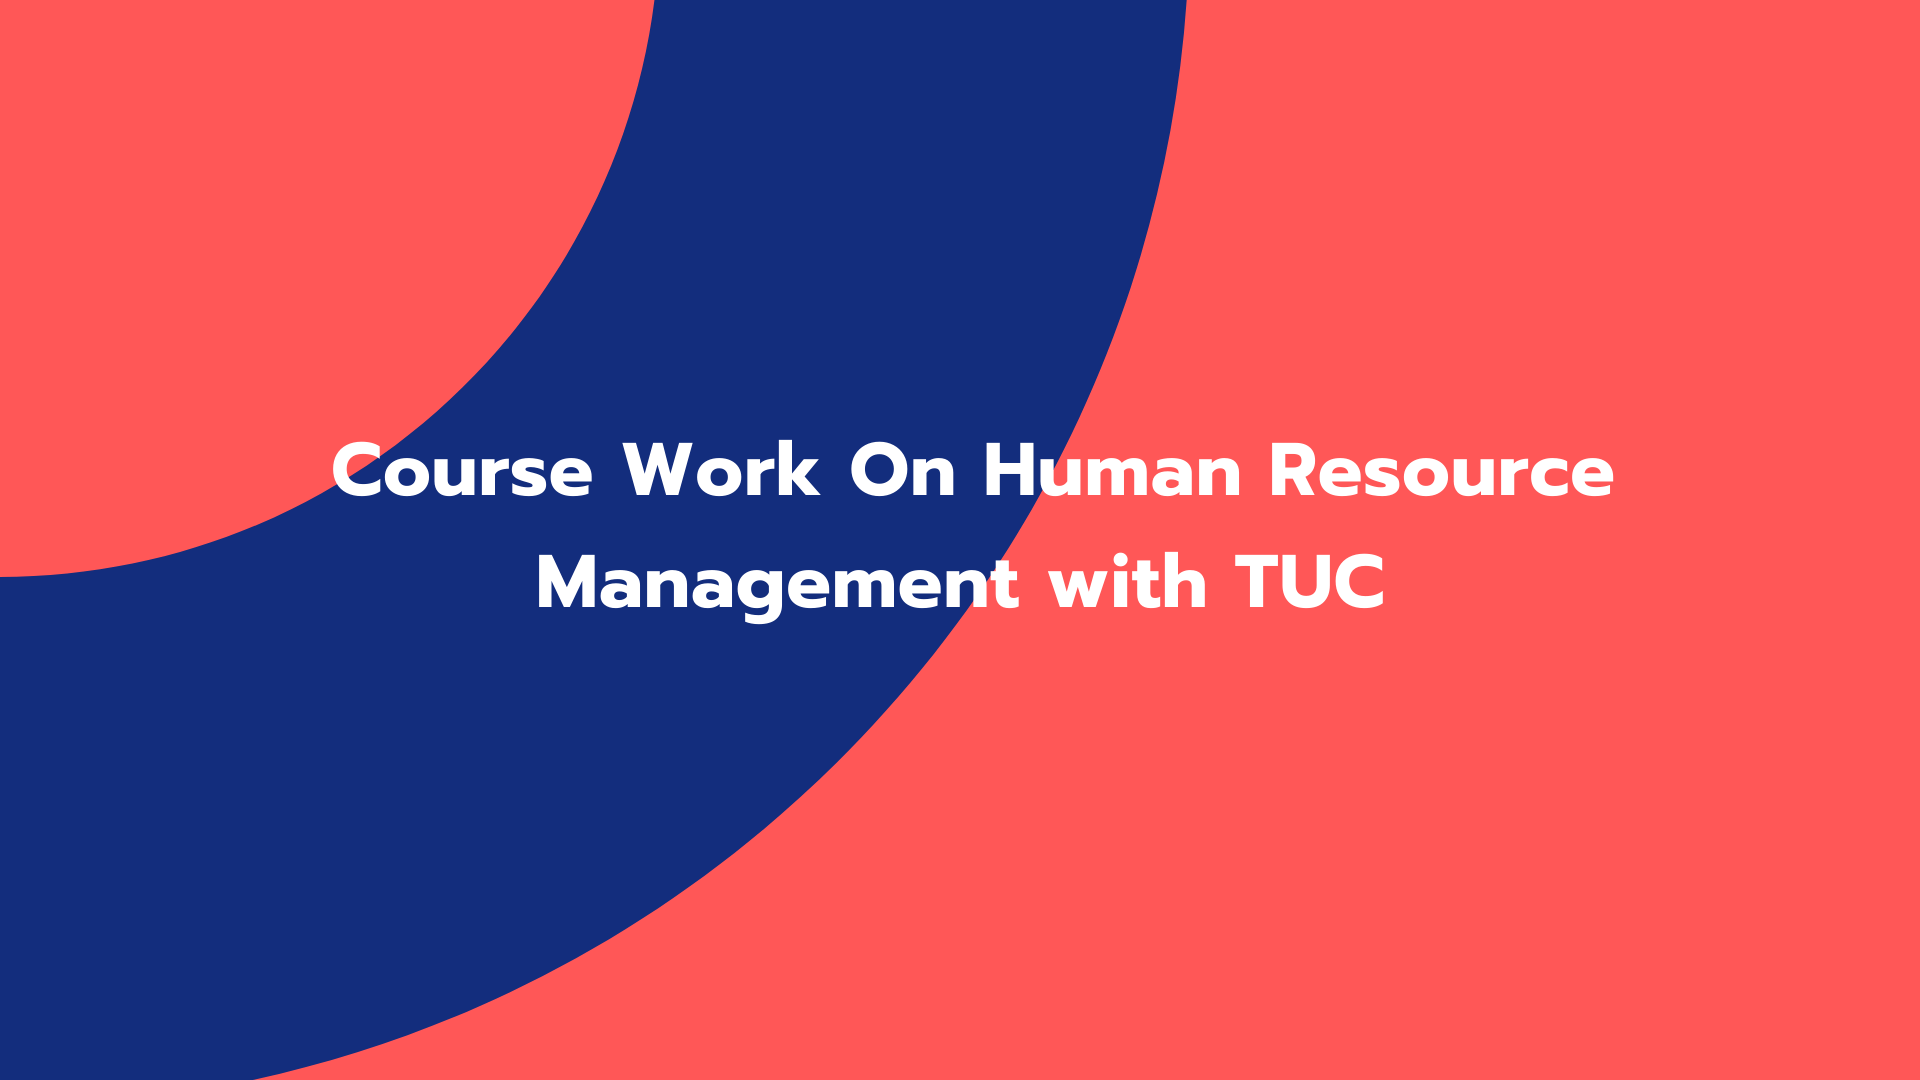 Course Work On Human Resource Management with TUC